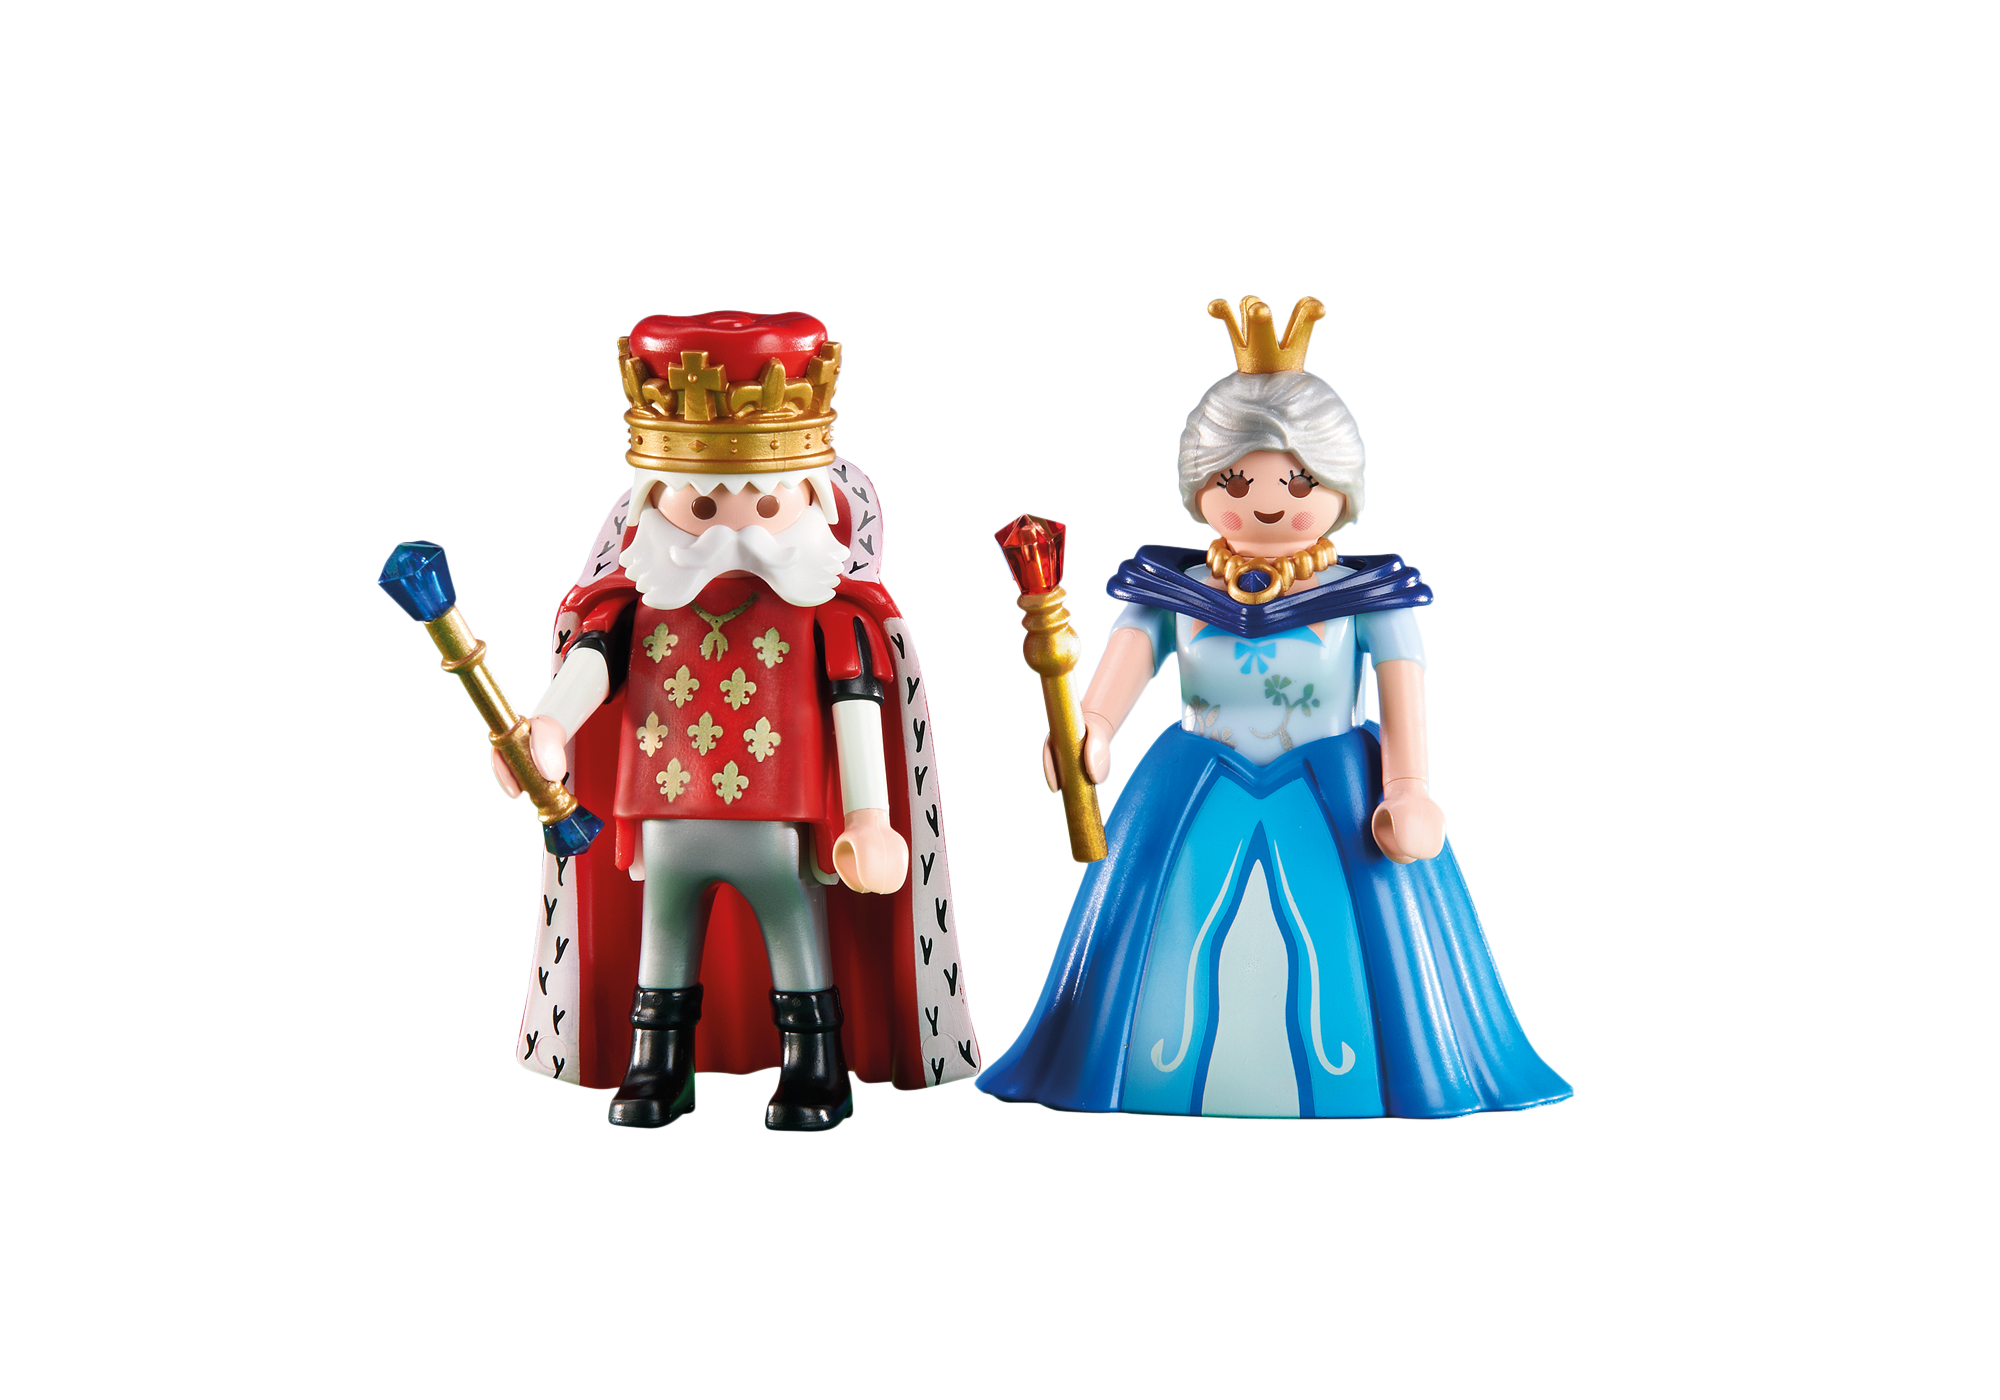 http://media.playmobil.com/i/playmobil/6378_product_detail/Königin und König